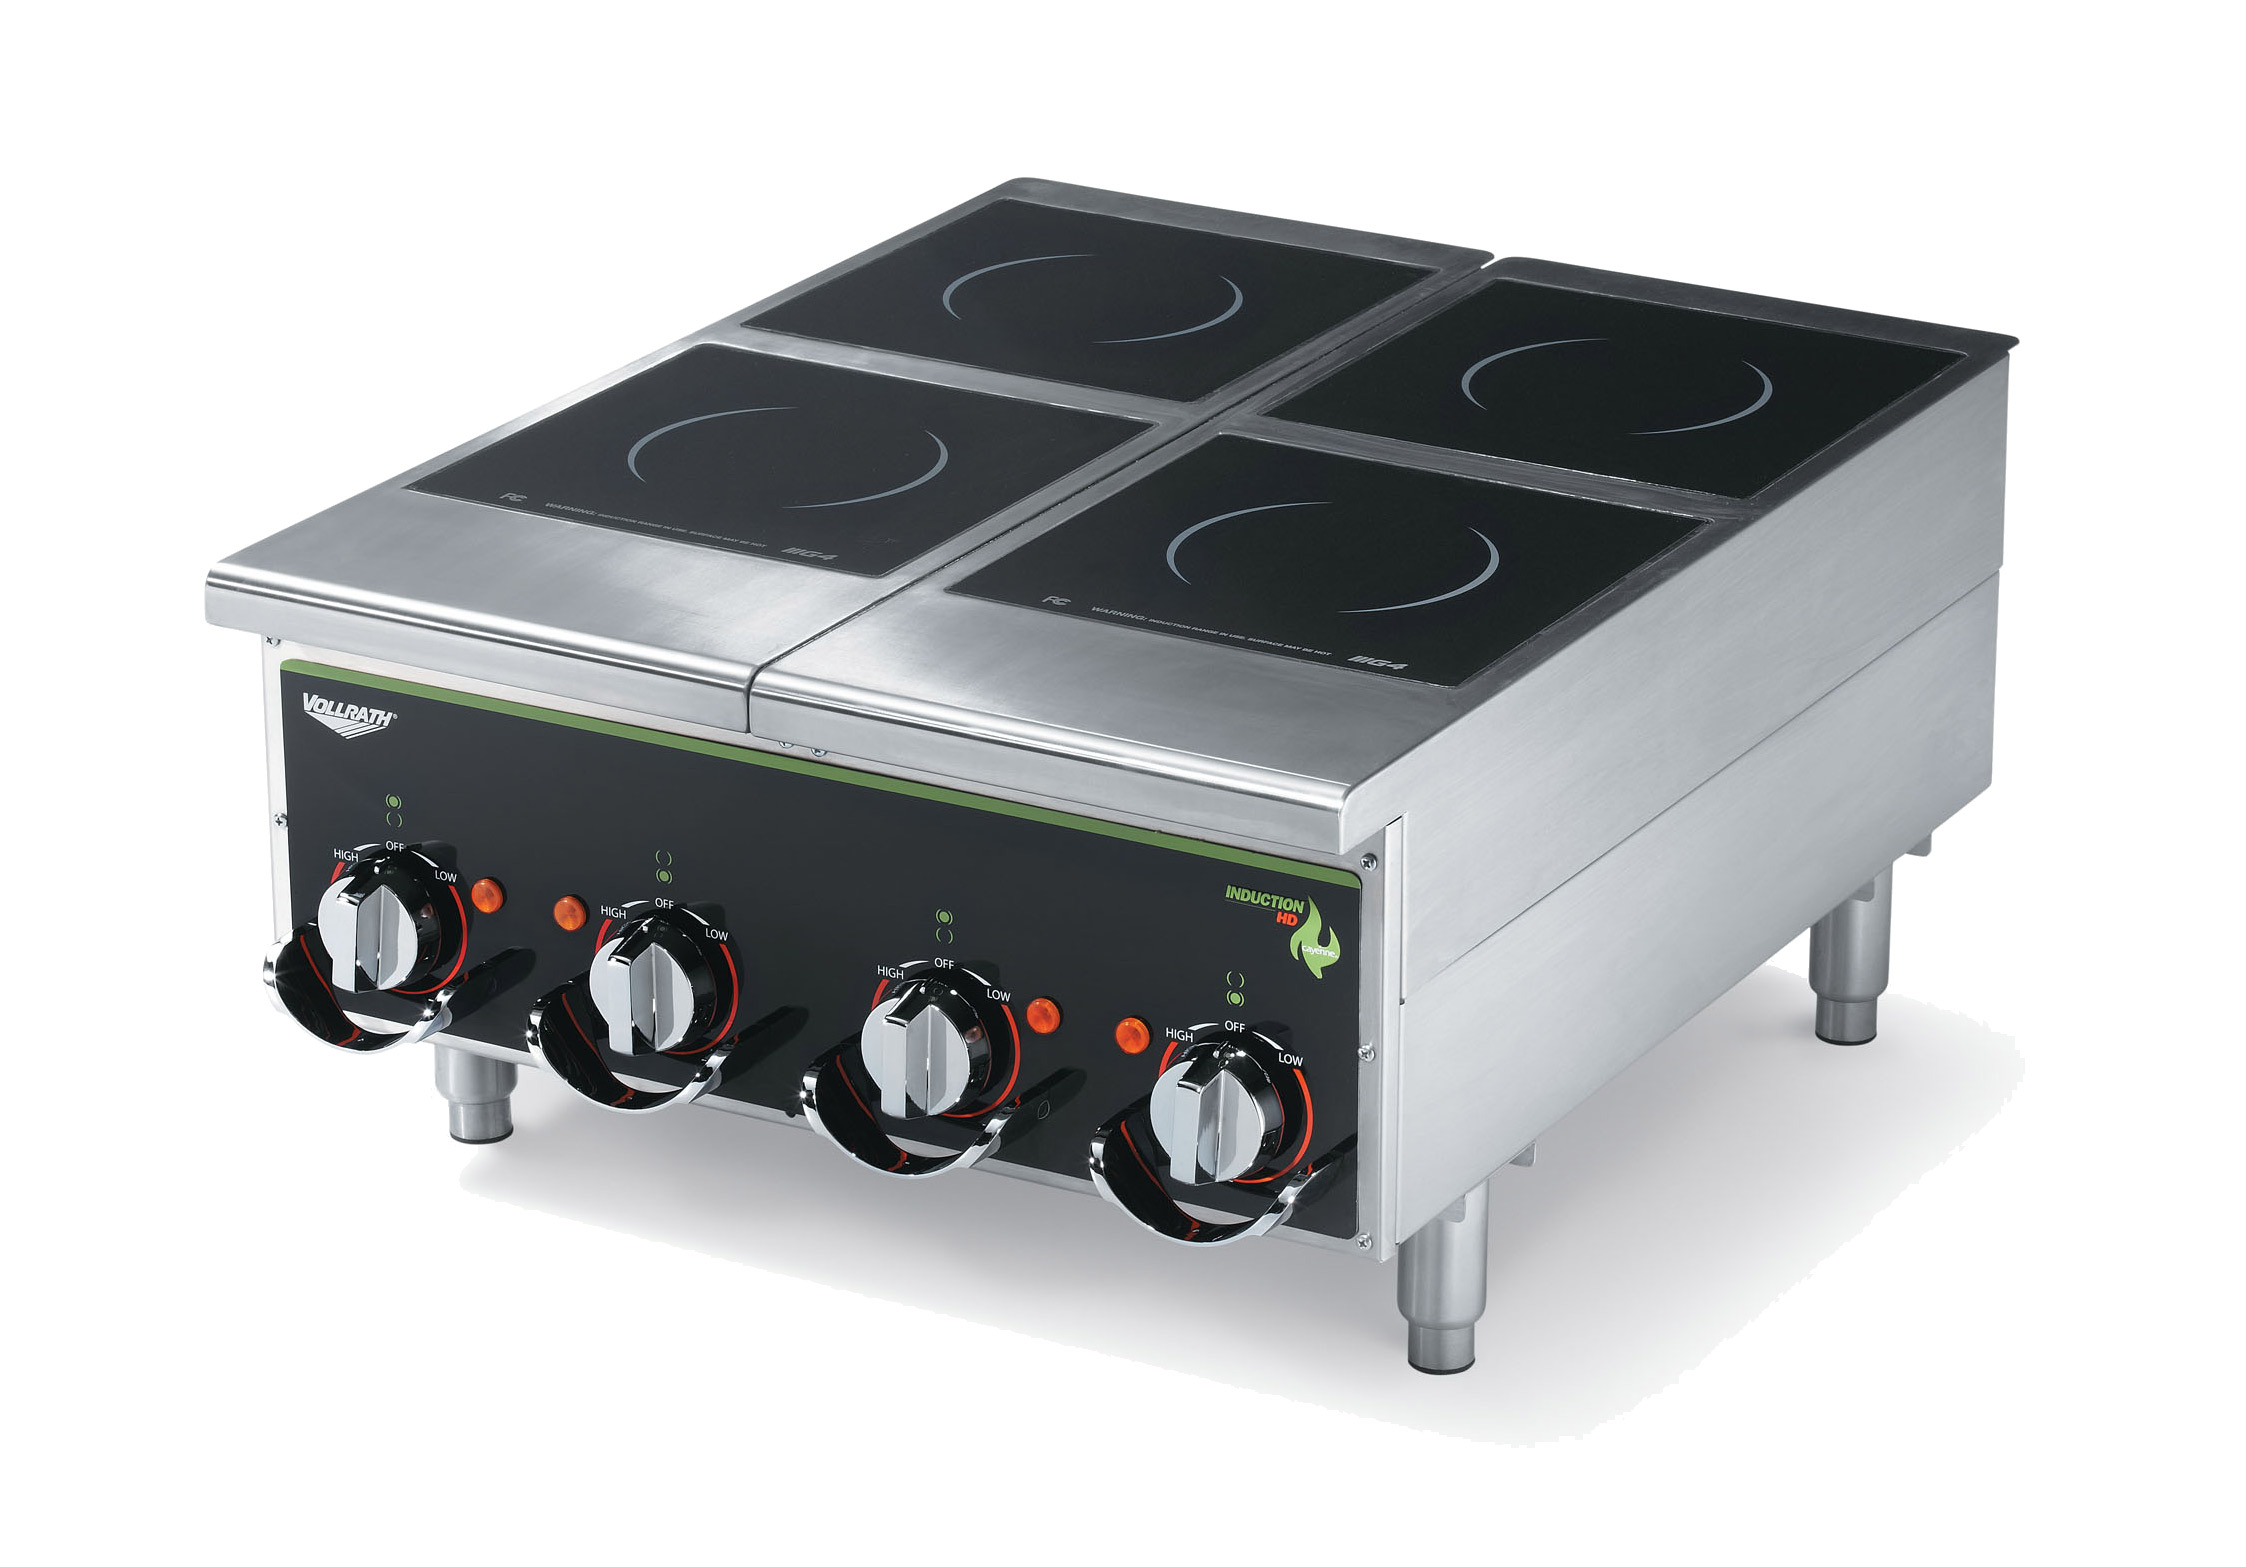 Vollrath 924HIMC induction range, countertop